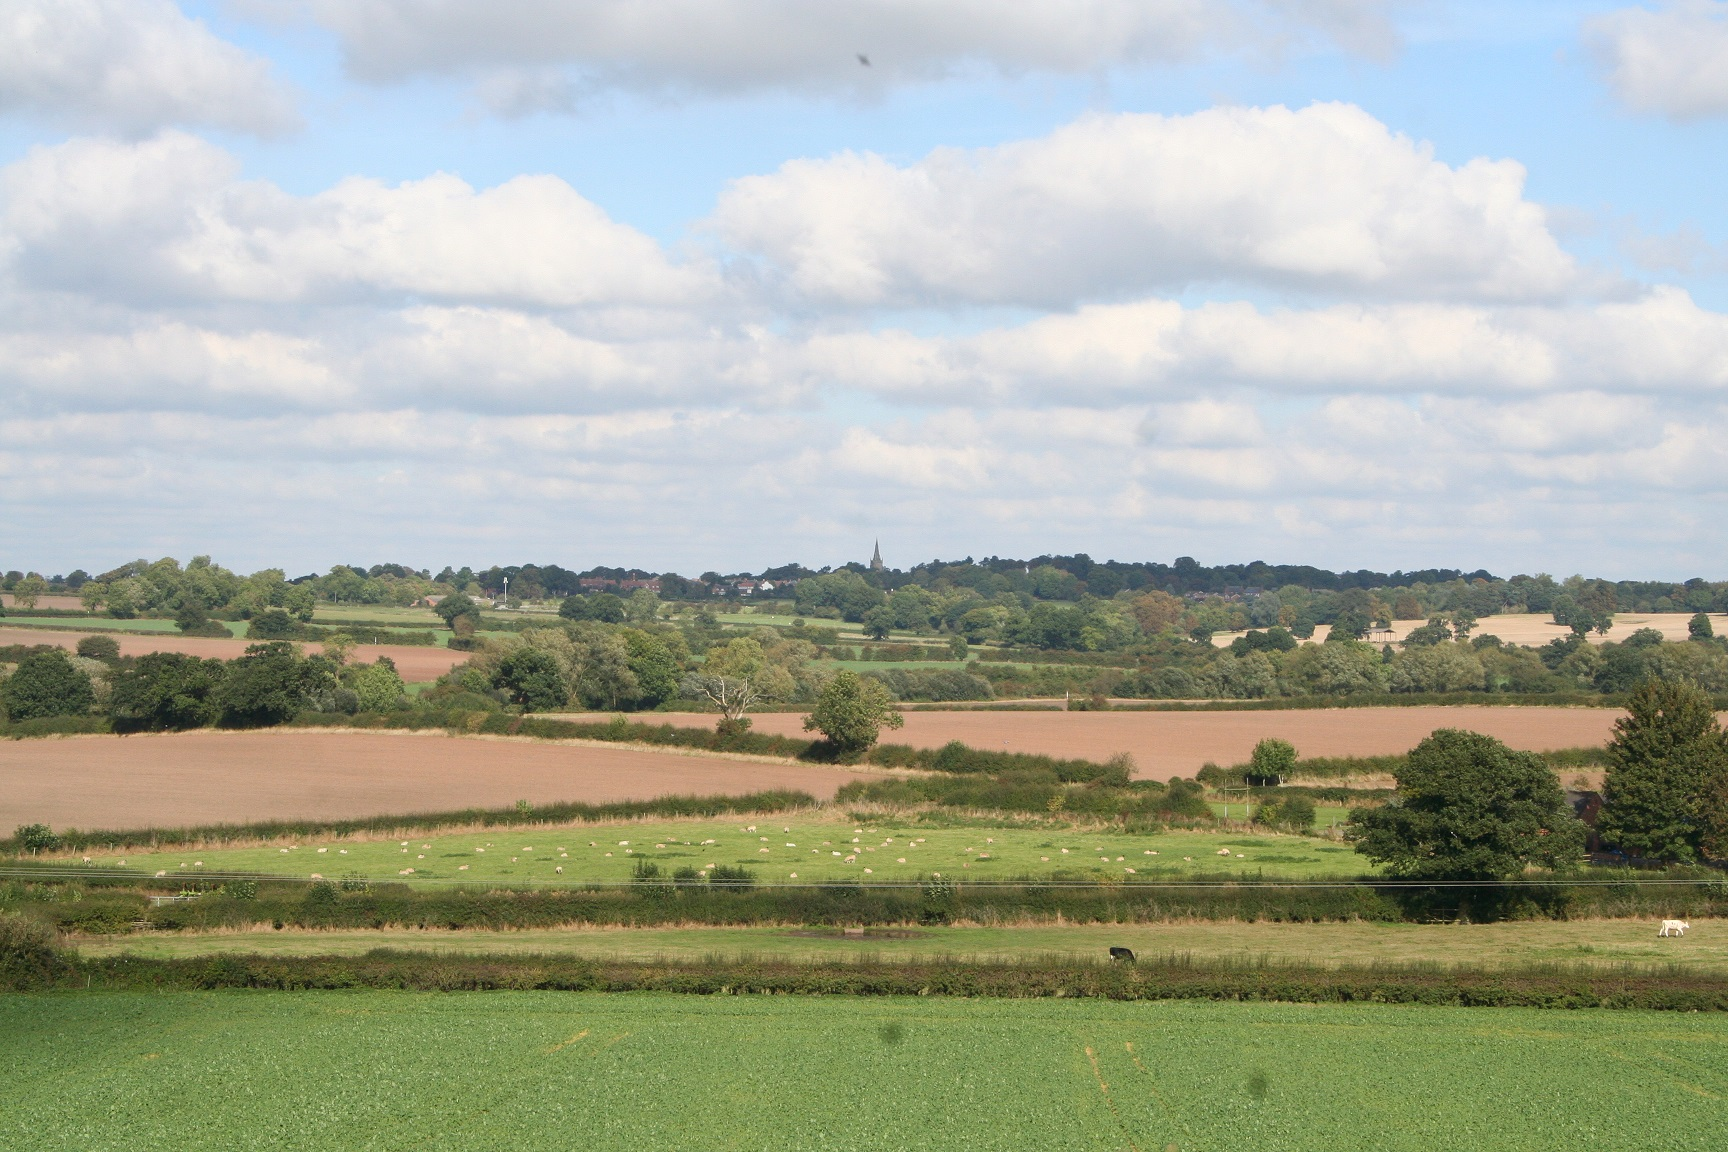 25 View from Bosworth Battlefield